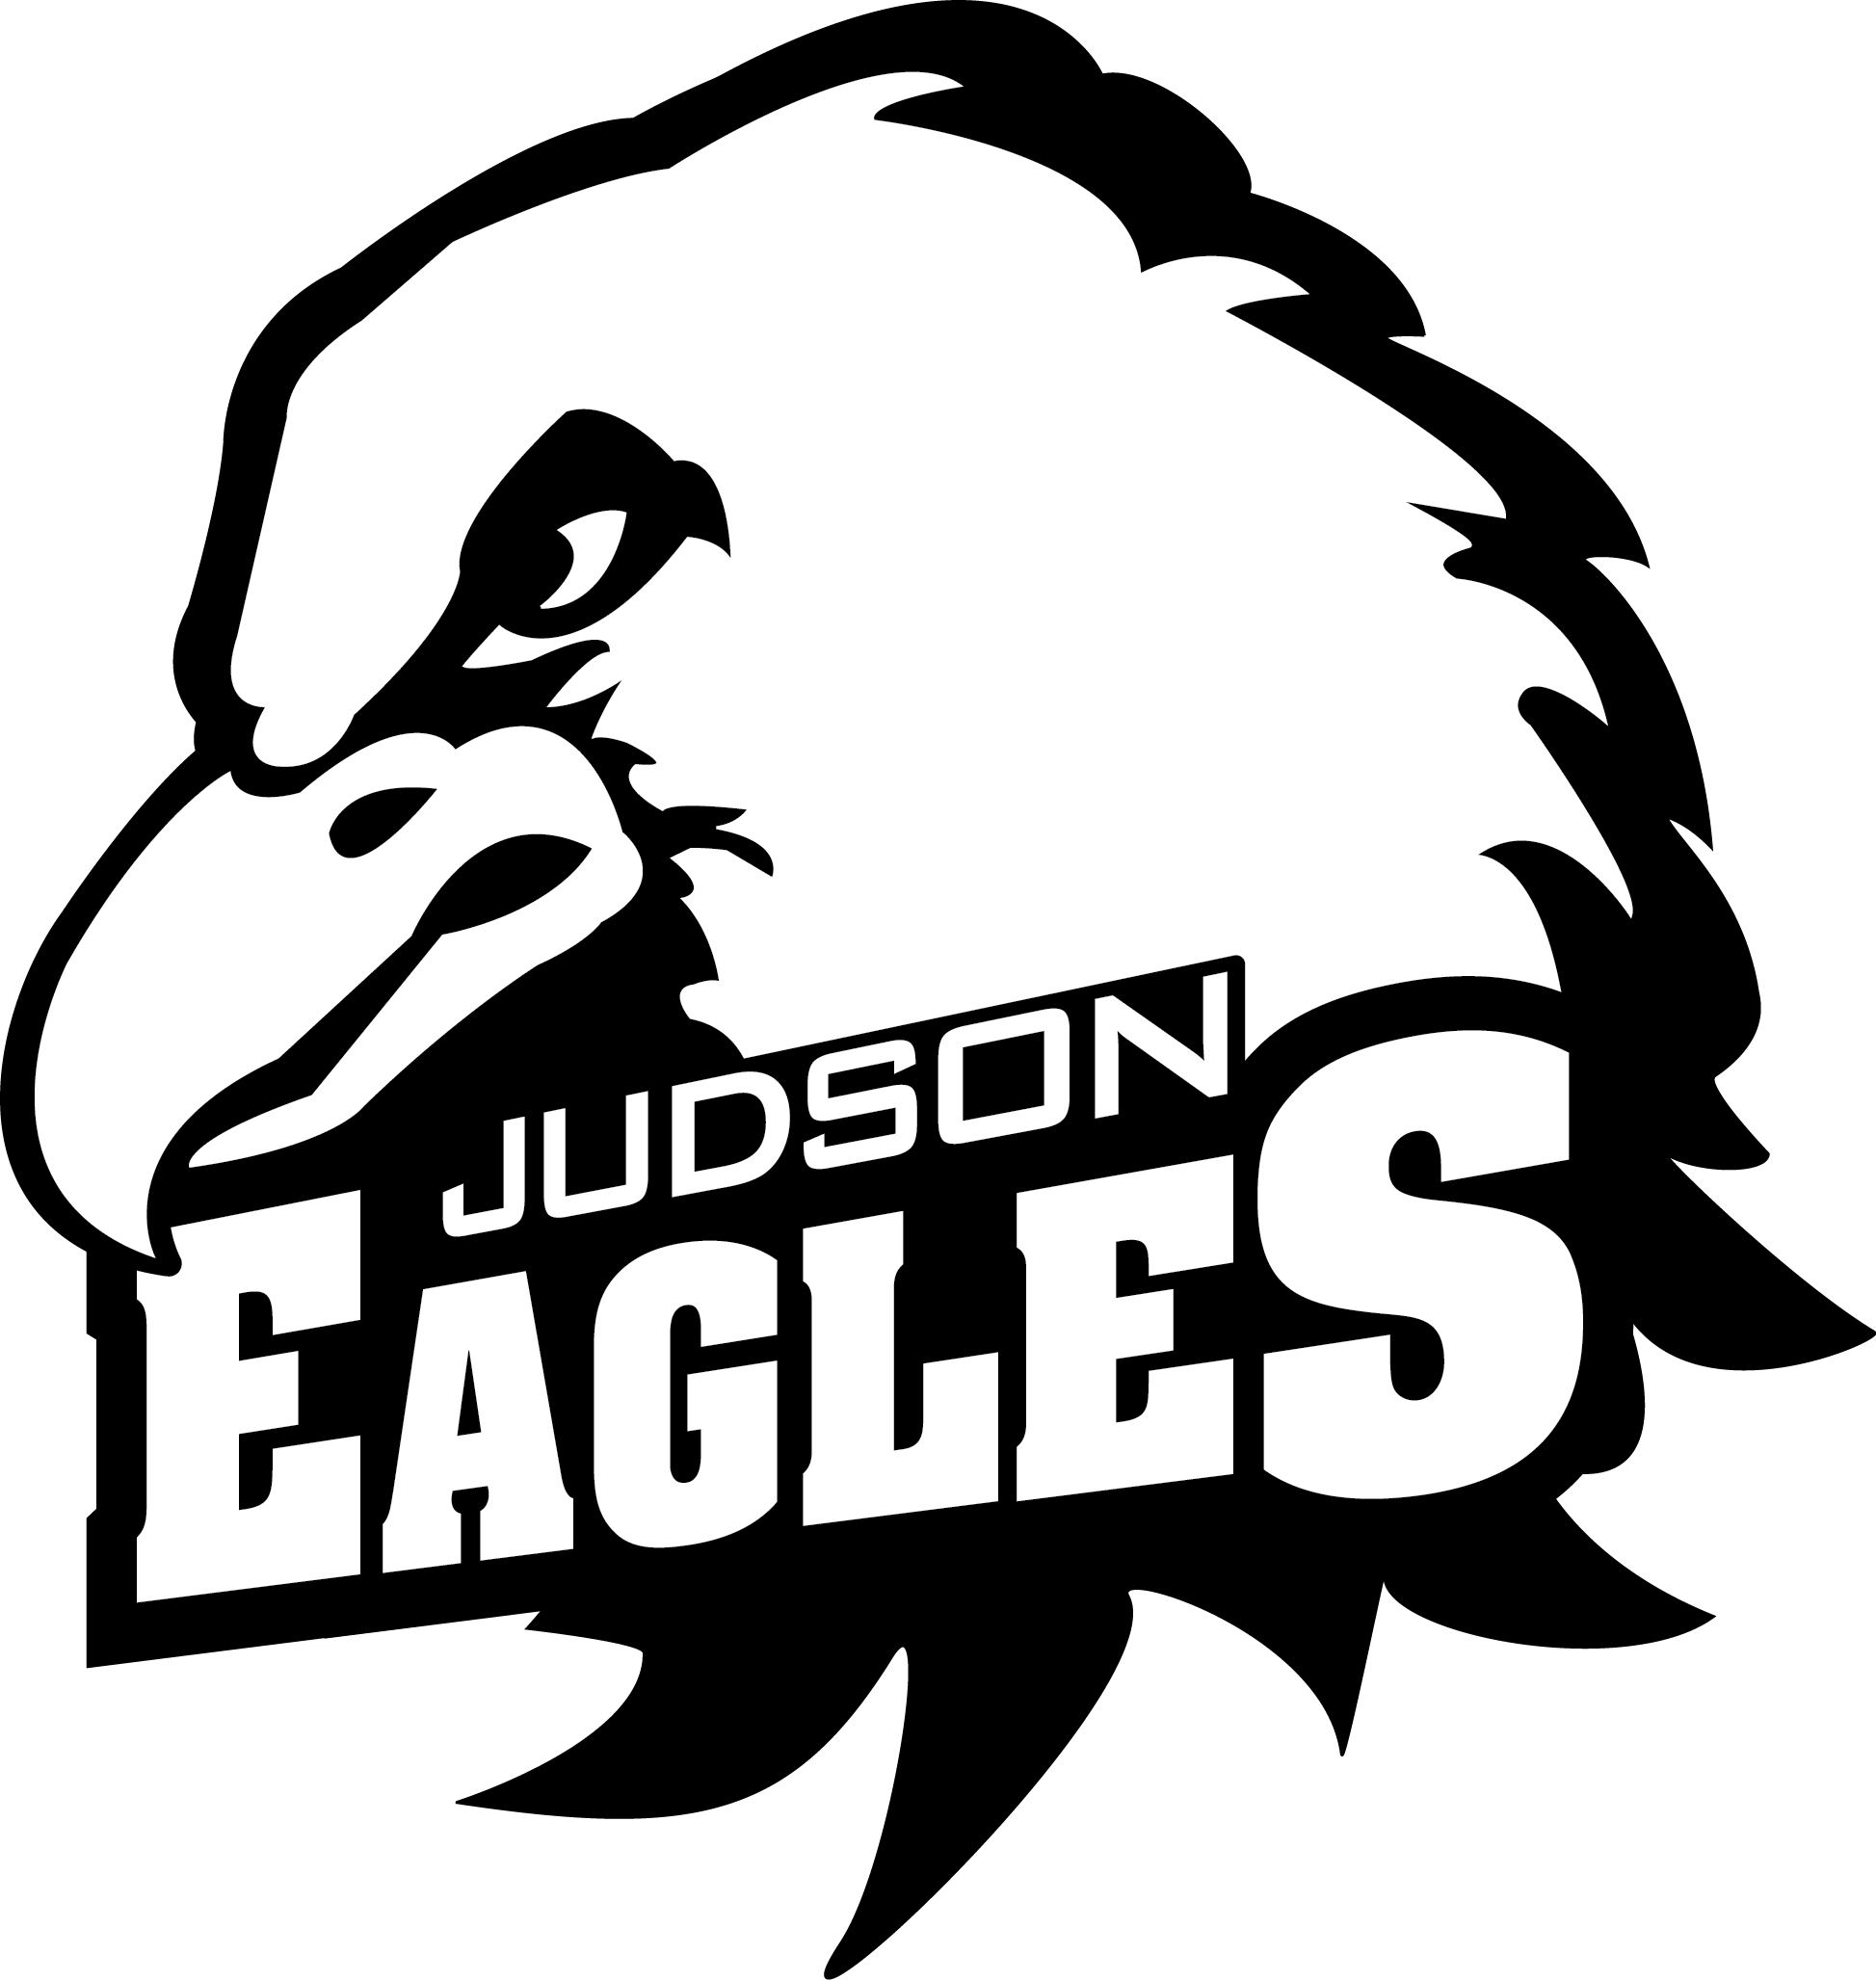 Judson Logos Judson University Christian College